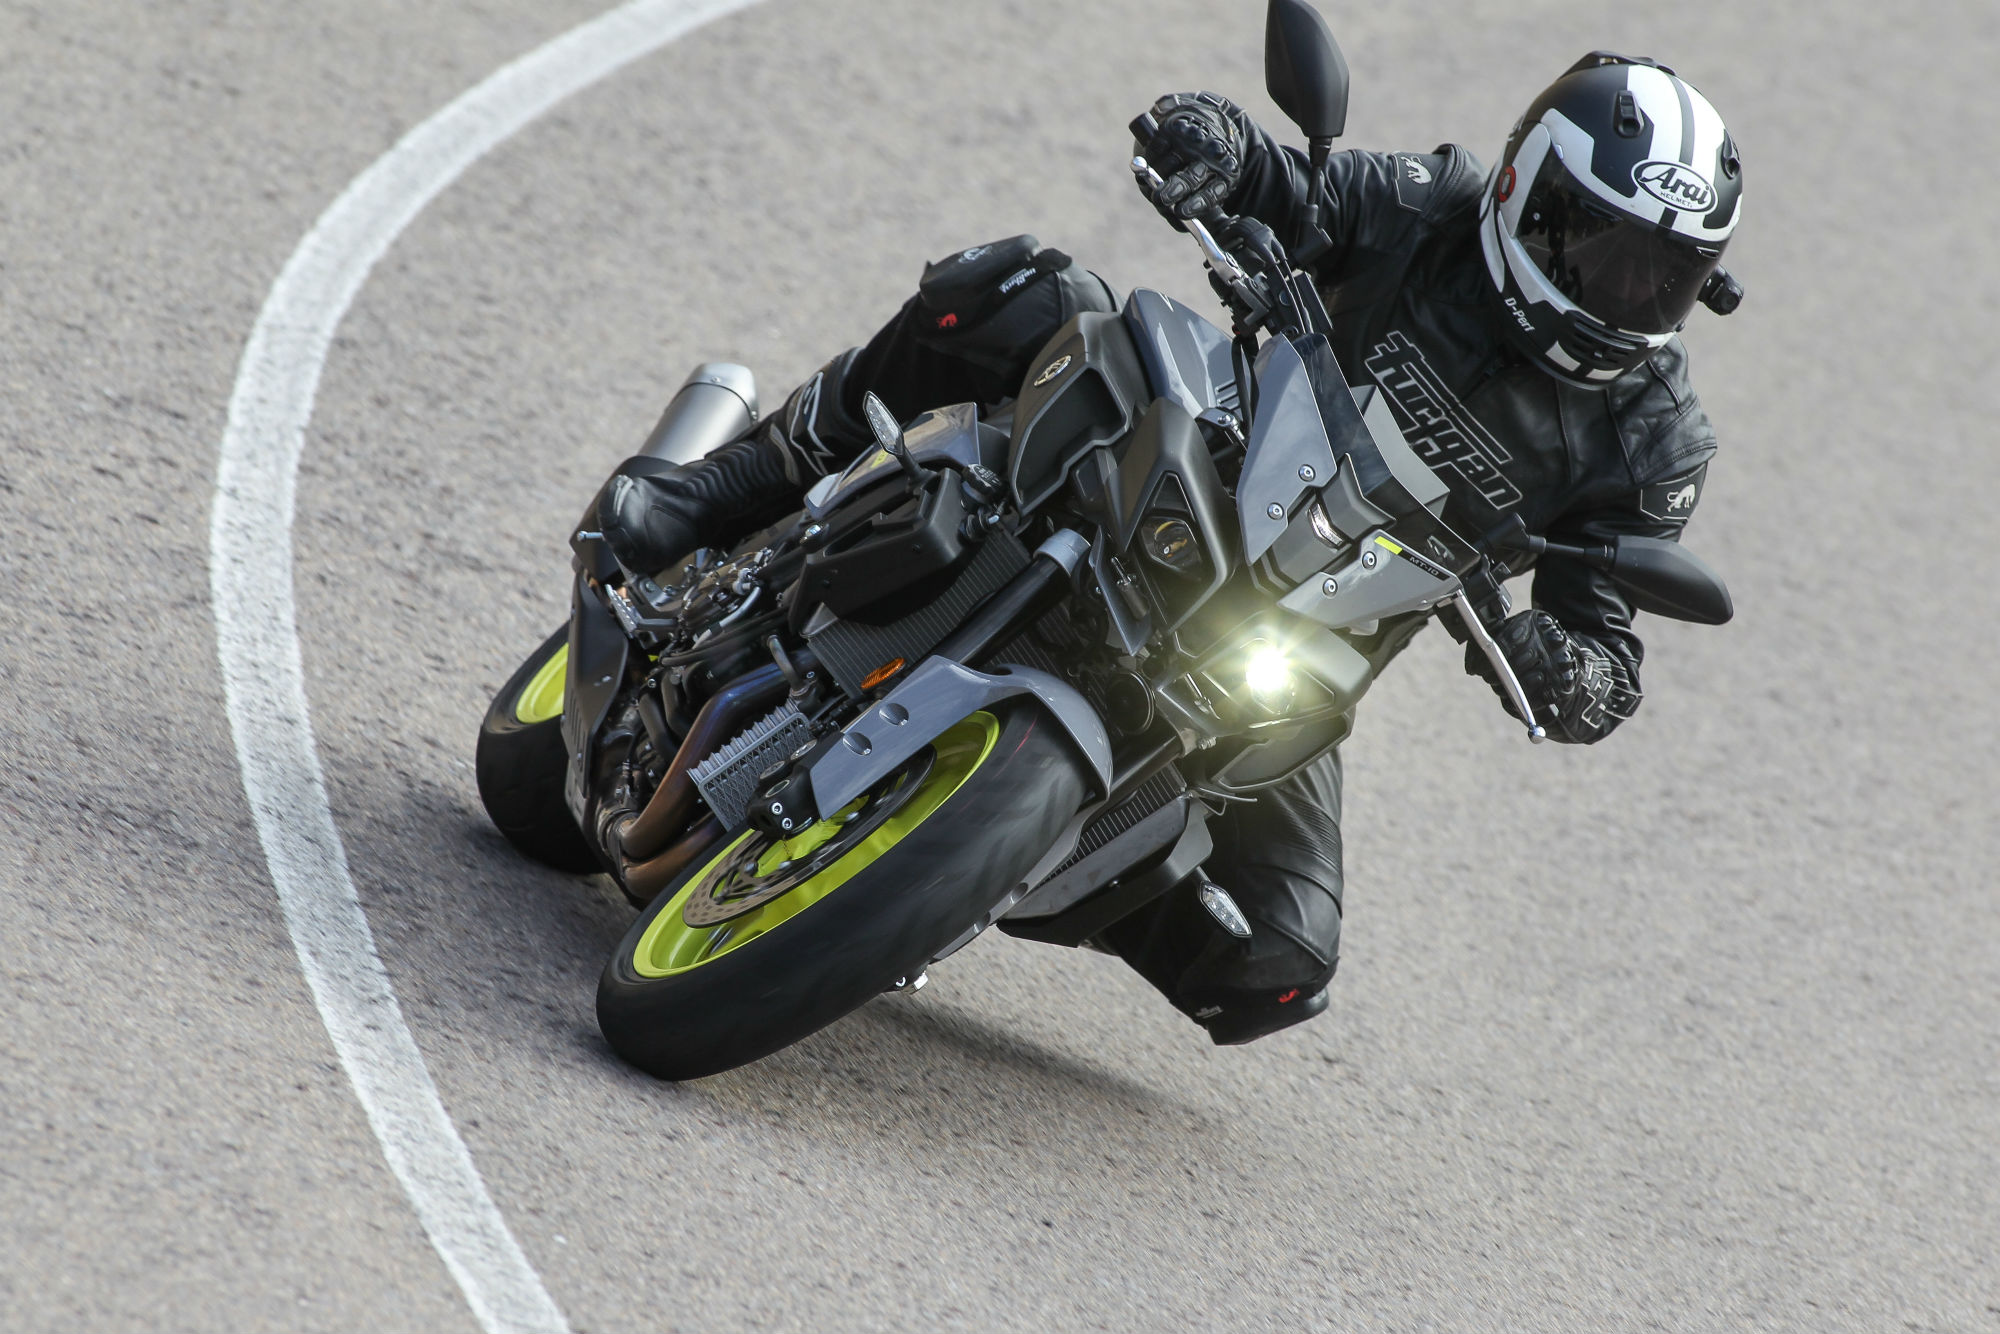 First ride yamaha mt 10 review visordown for Yamaha mt10 price